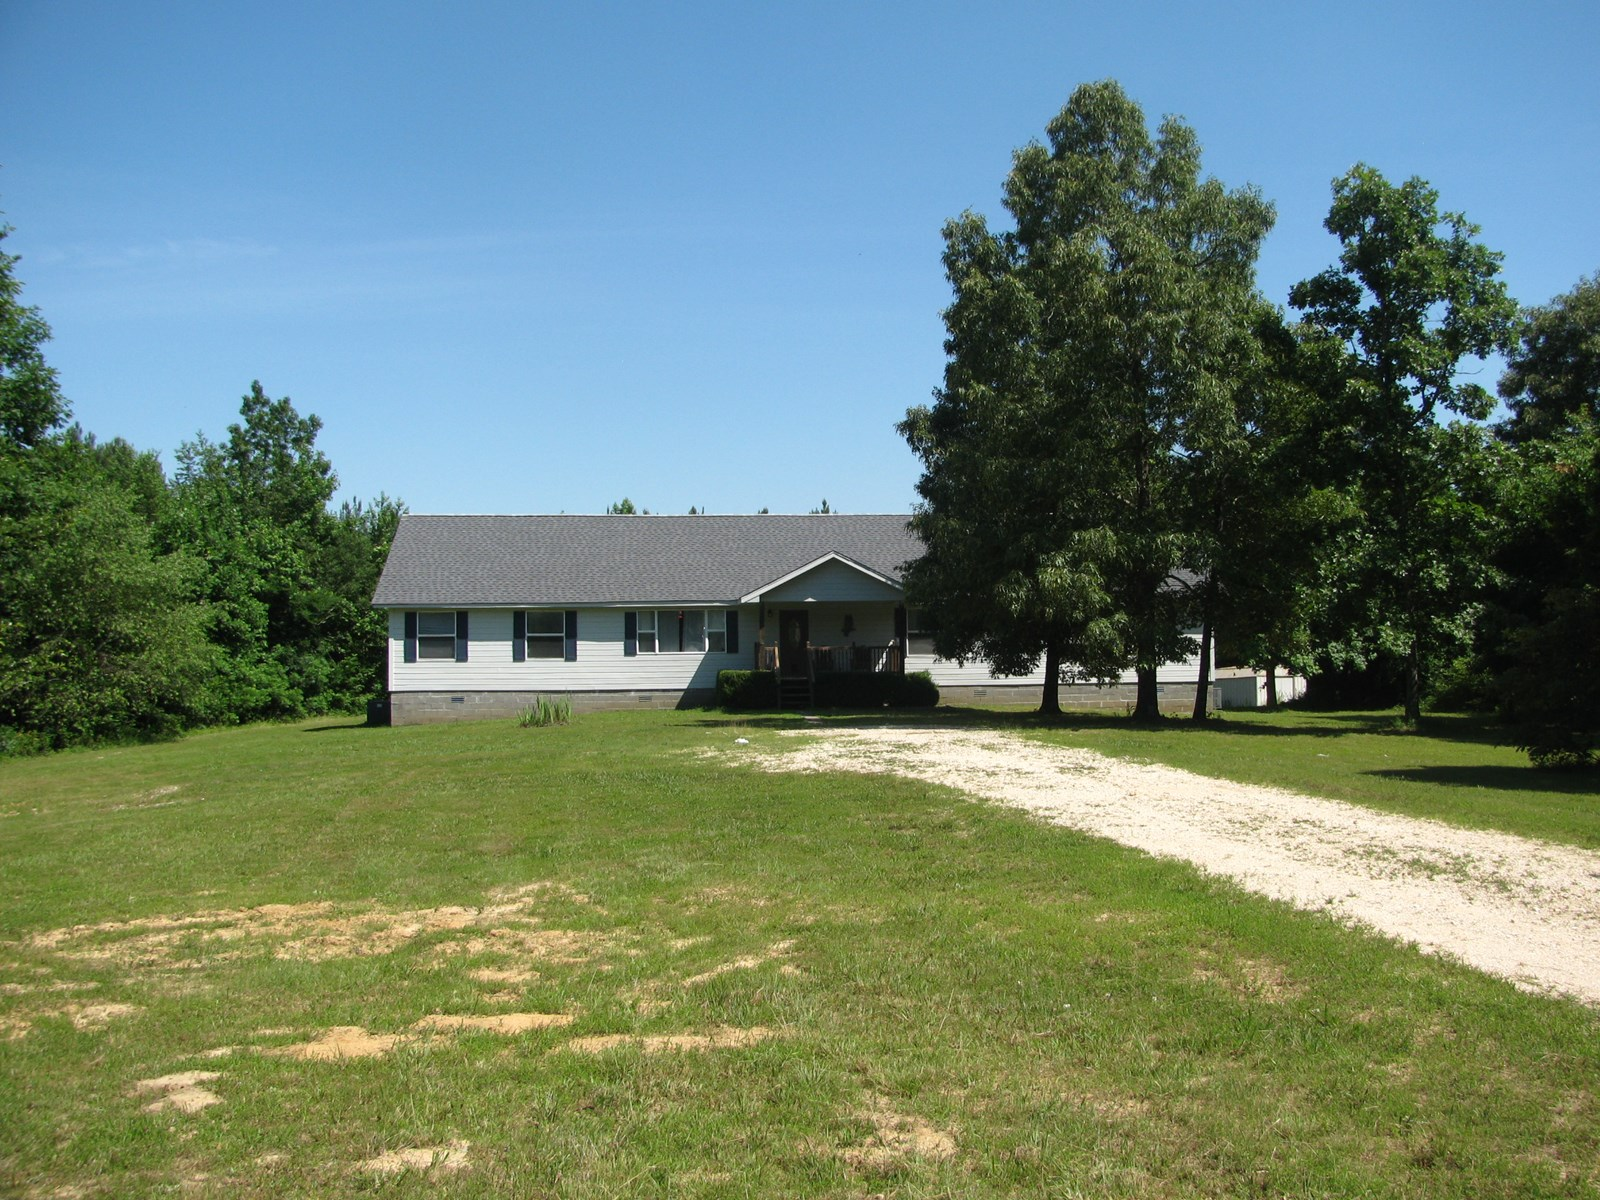 LARGE COUNTRY HOME ON 11 ACRES IN ADAMSVILLE, TN